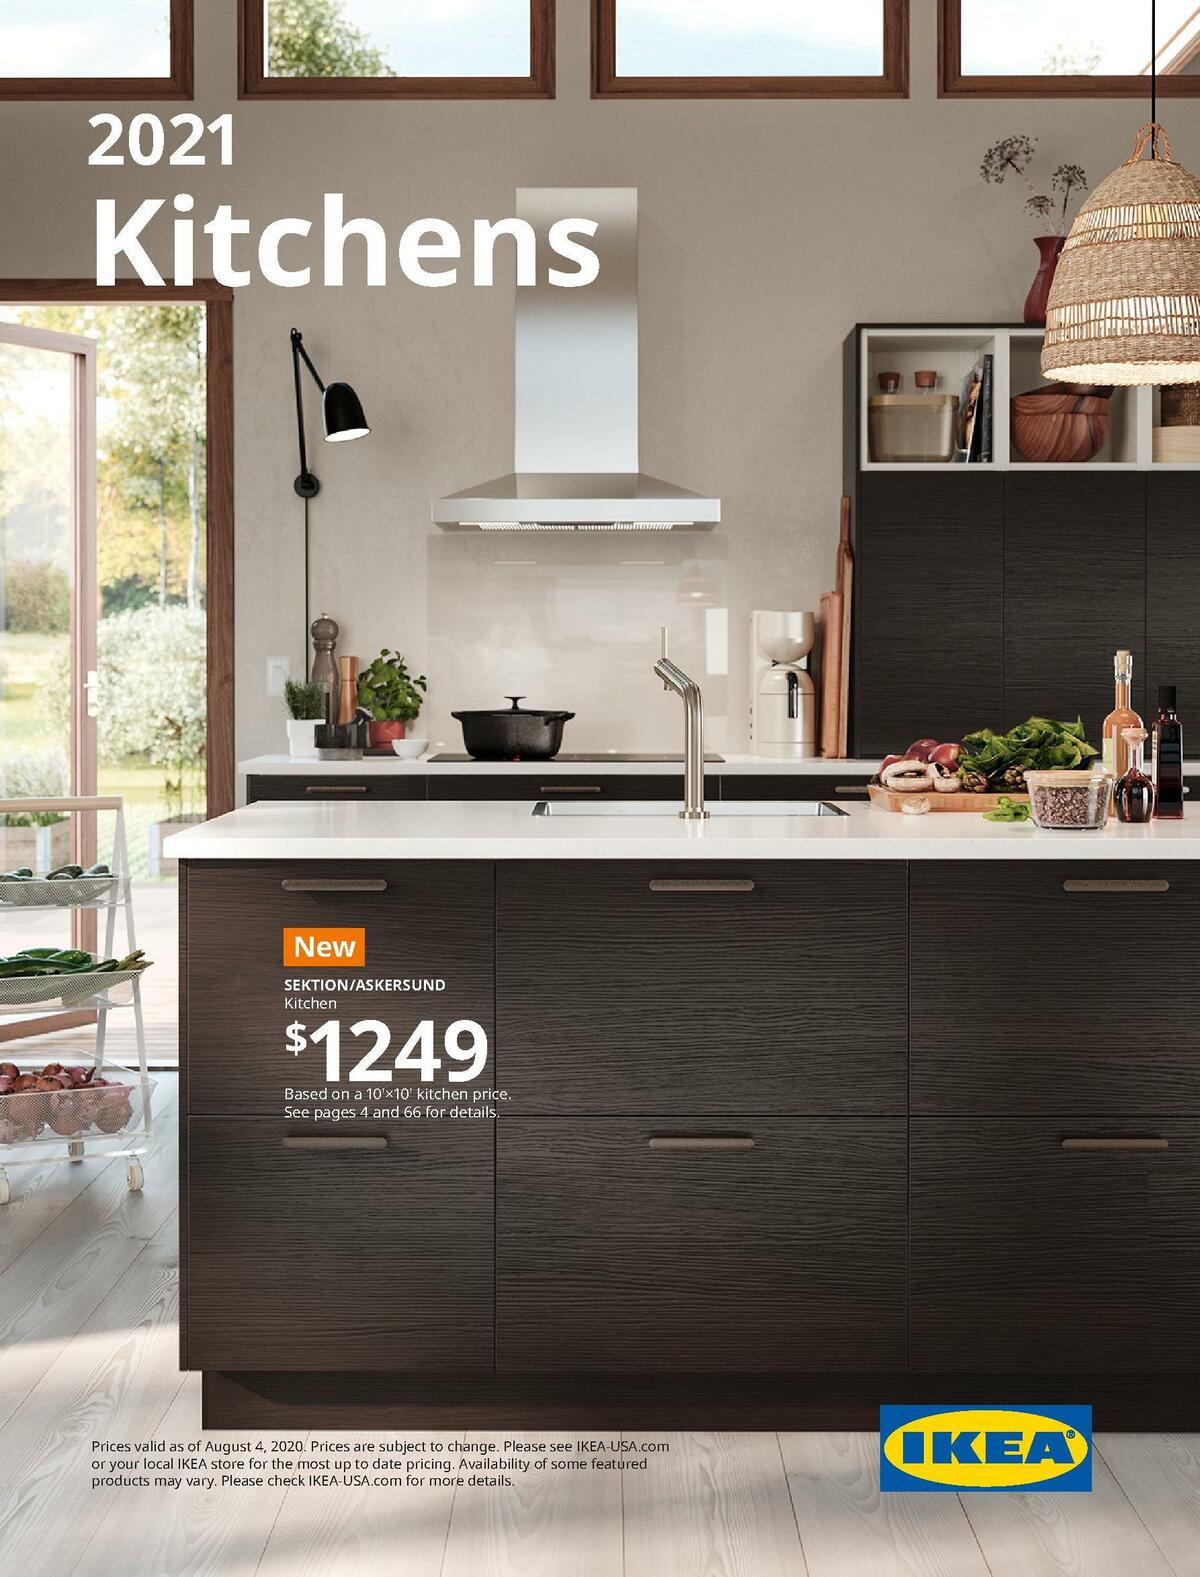 IKEA Kitchens Brochure 2021 Weekly Ad from August 31